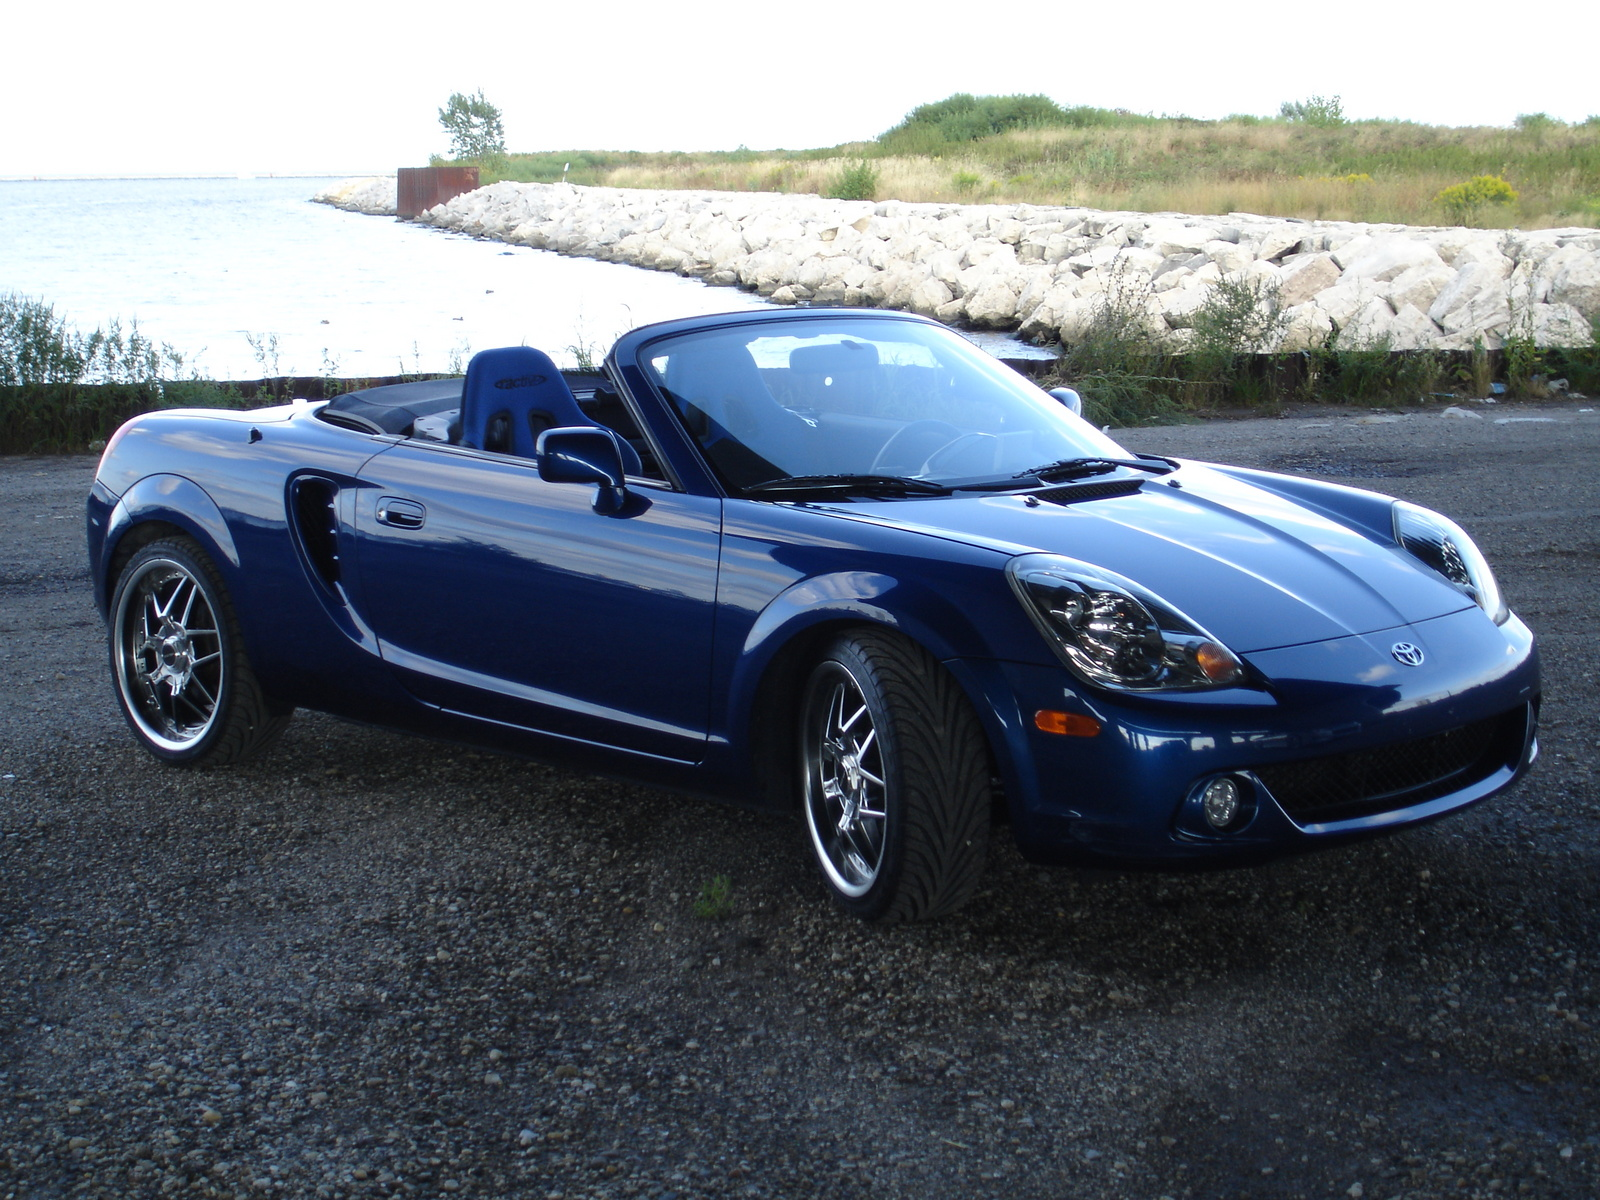 toyota mr2 spyder convertible-pic. 2